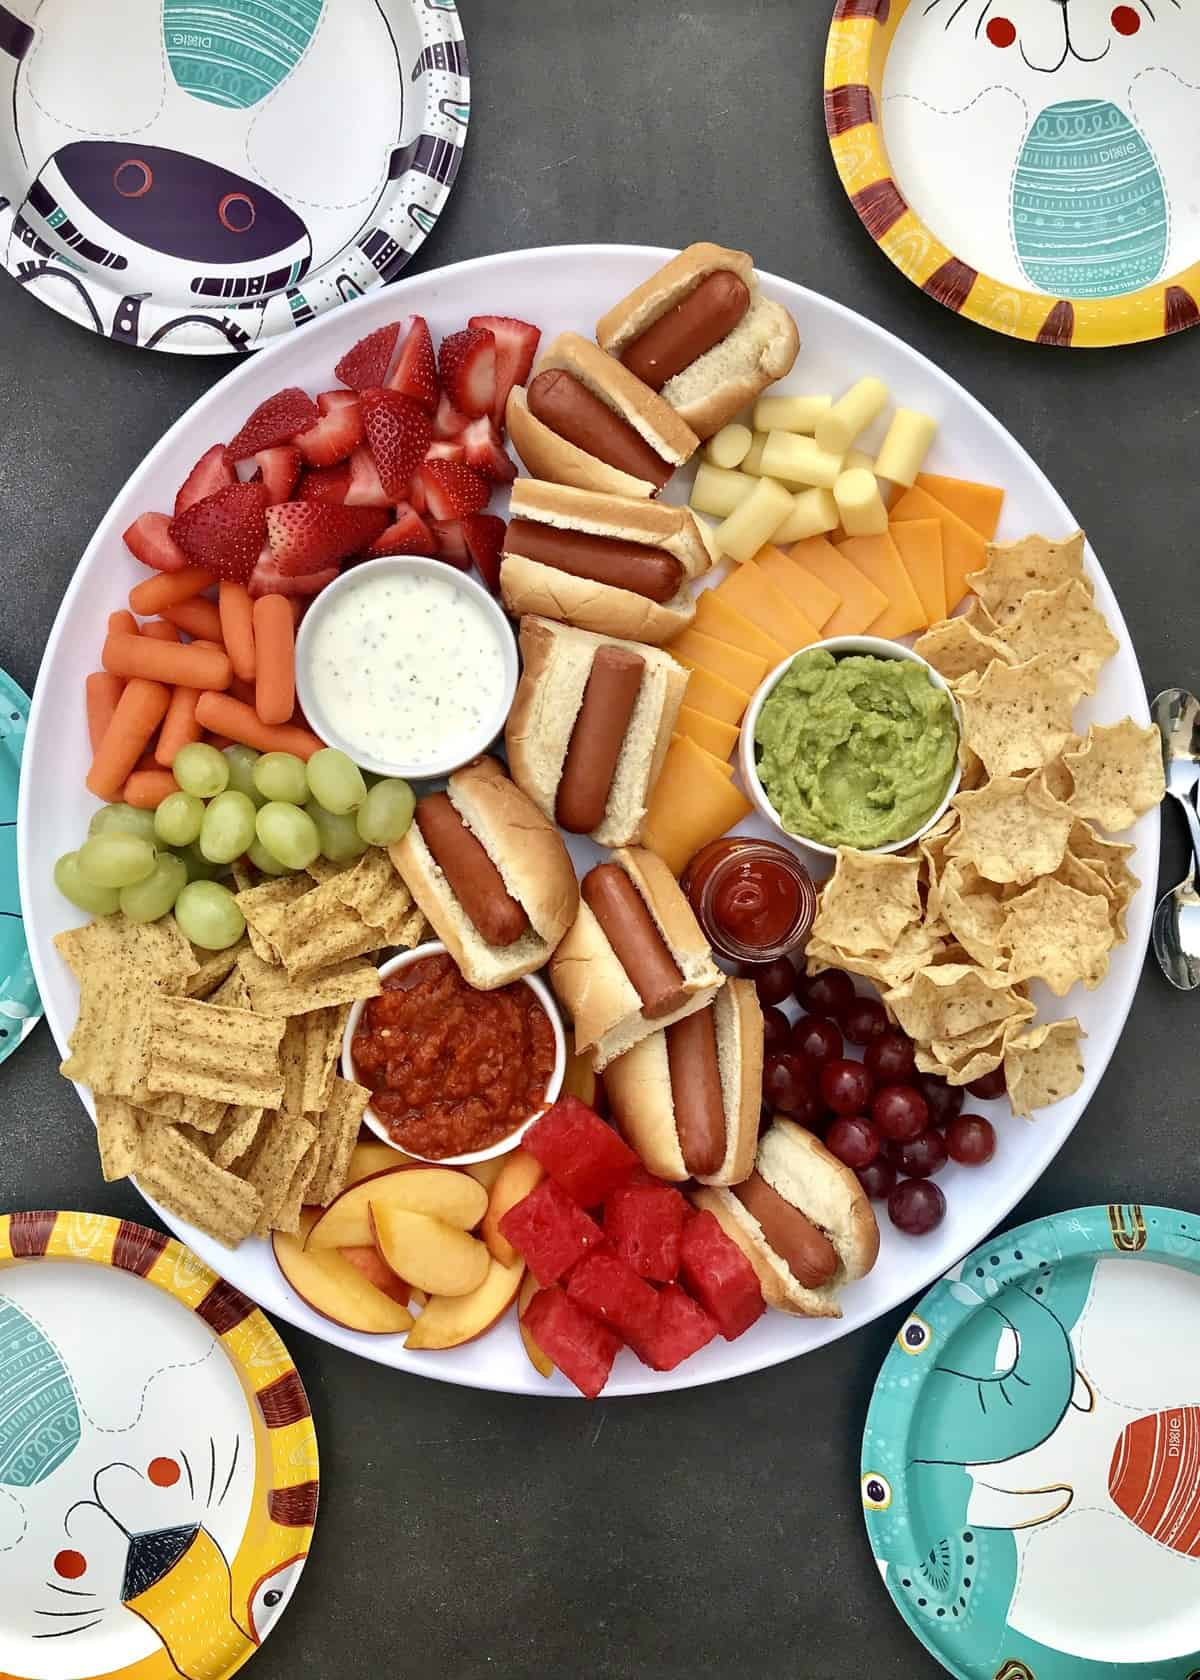 Hot Dog Lunch Tray by The BakerMama